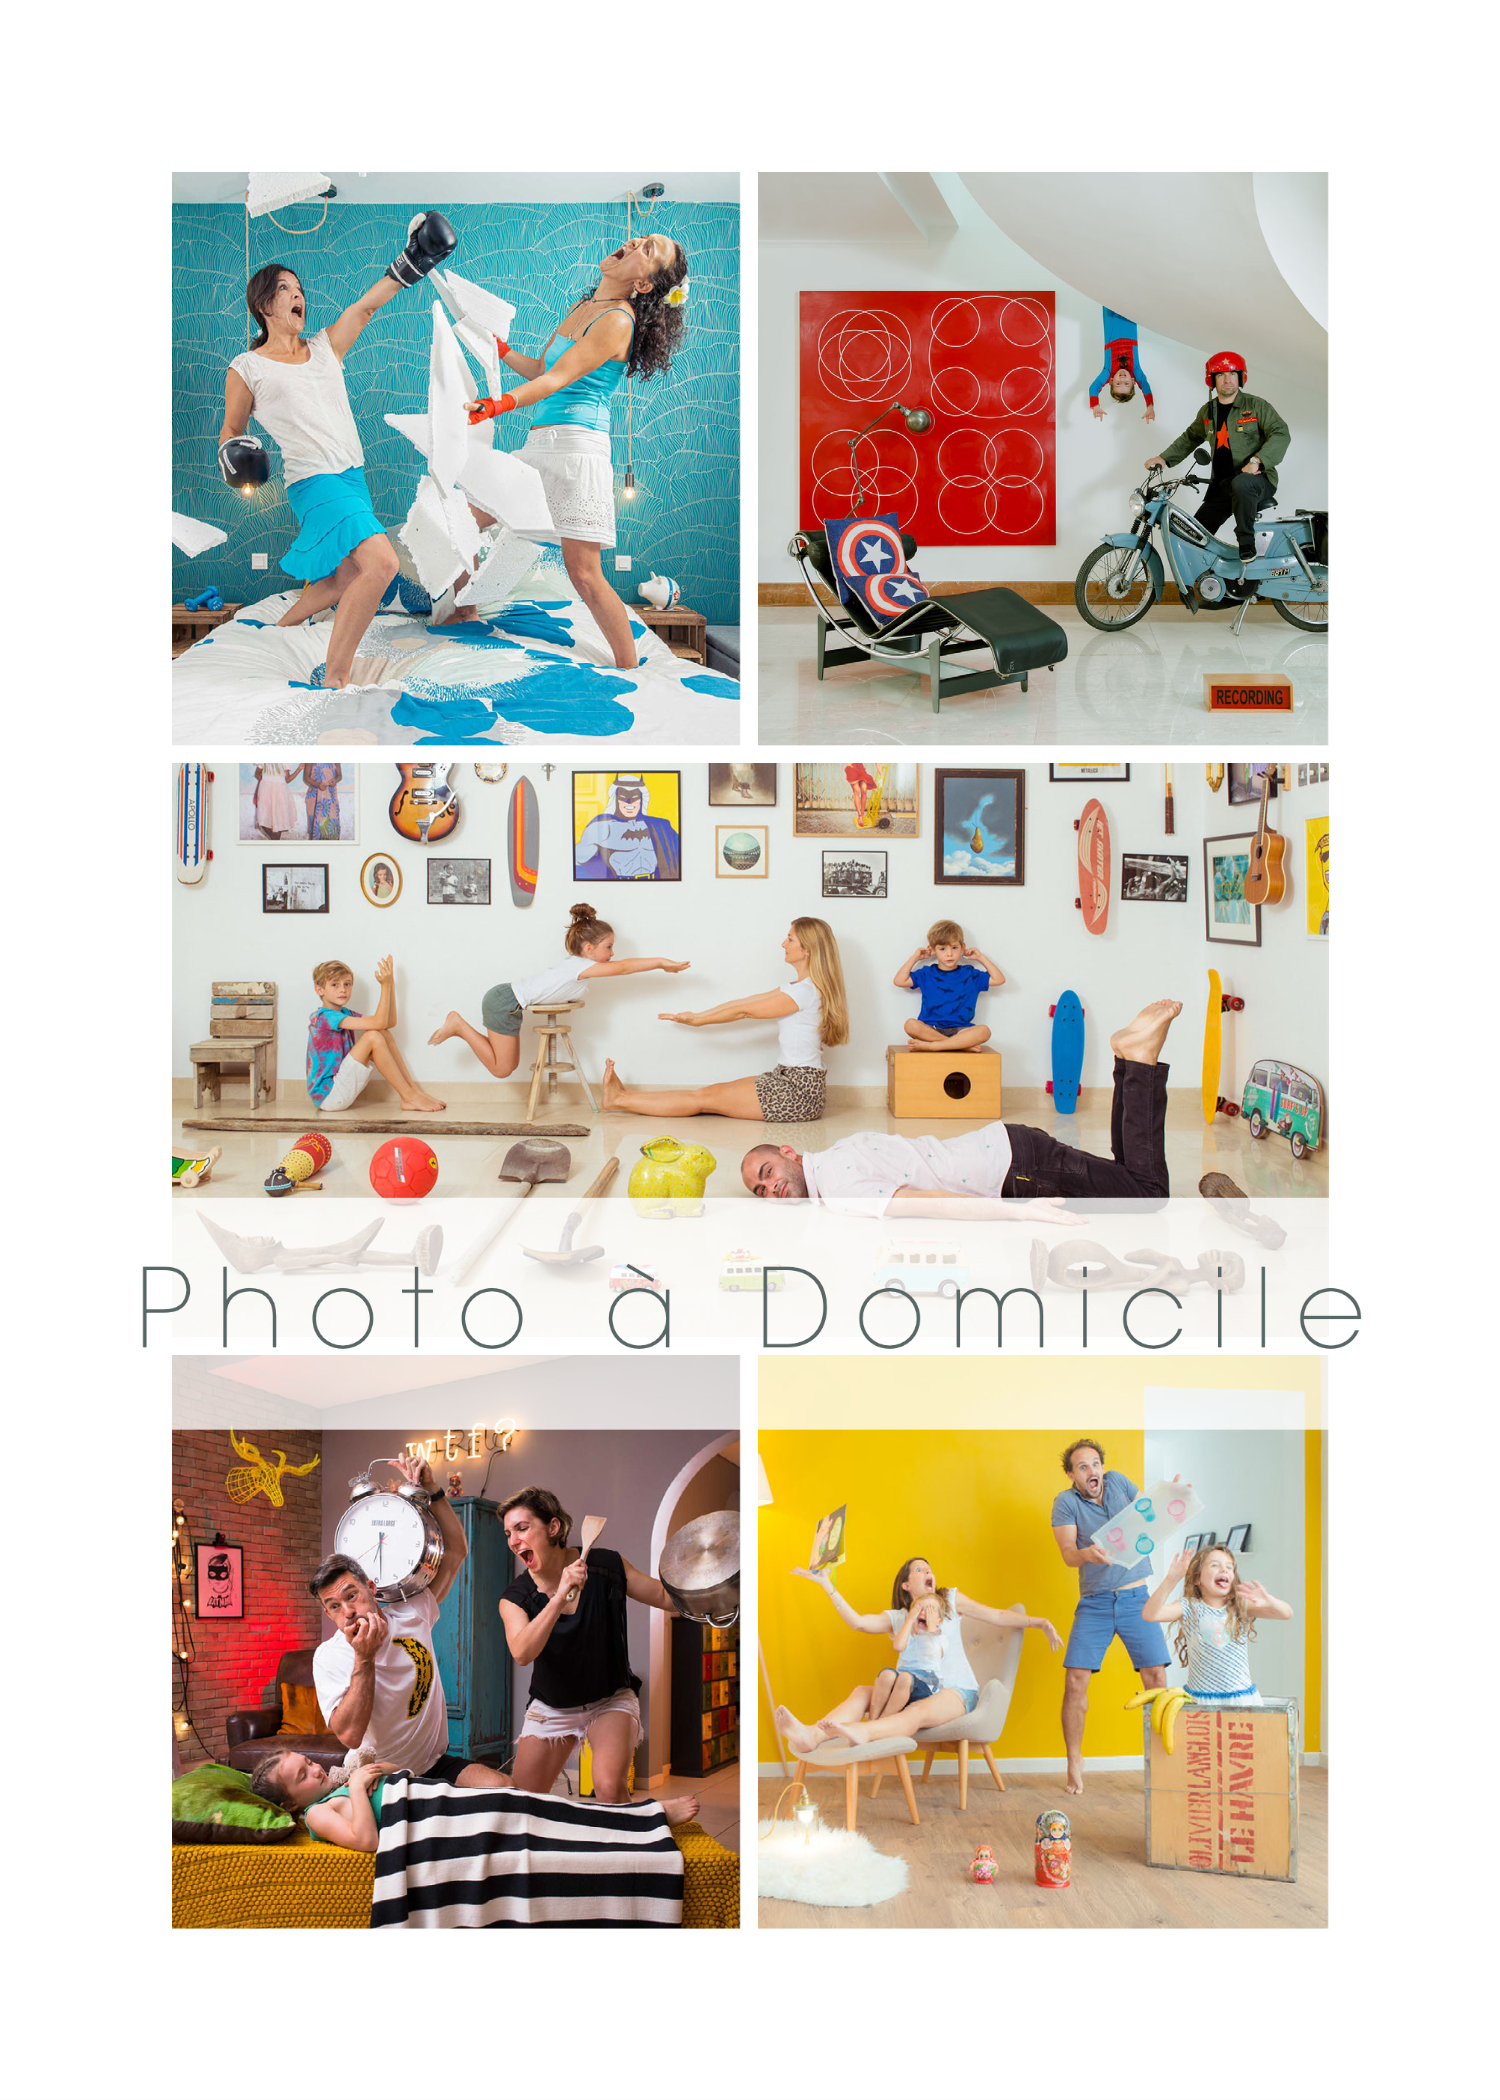 photographe famille, portrait de famille original, photo de groupe, shooting photo a domicile, seance shooting photo en famille